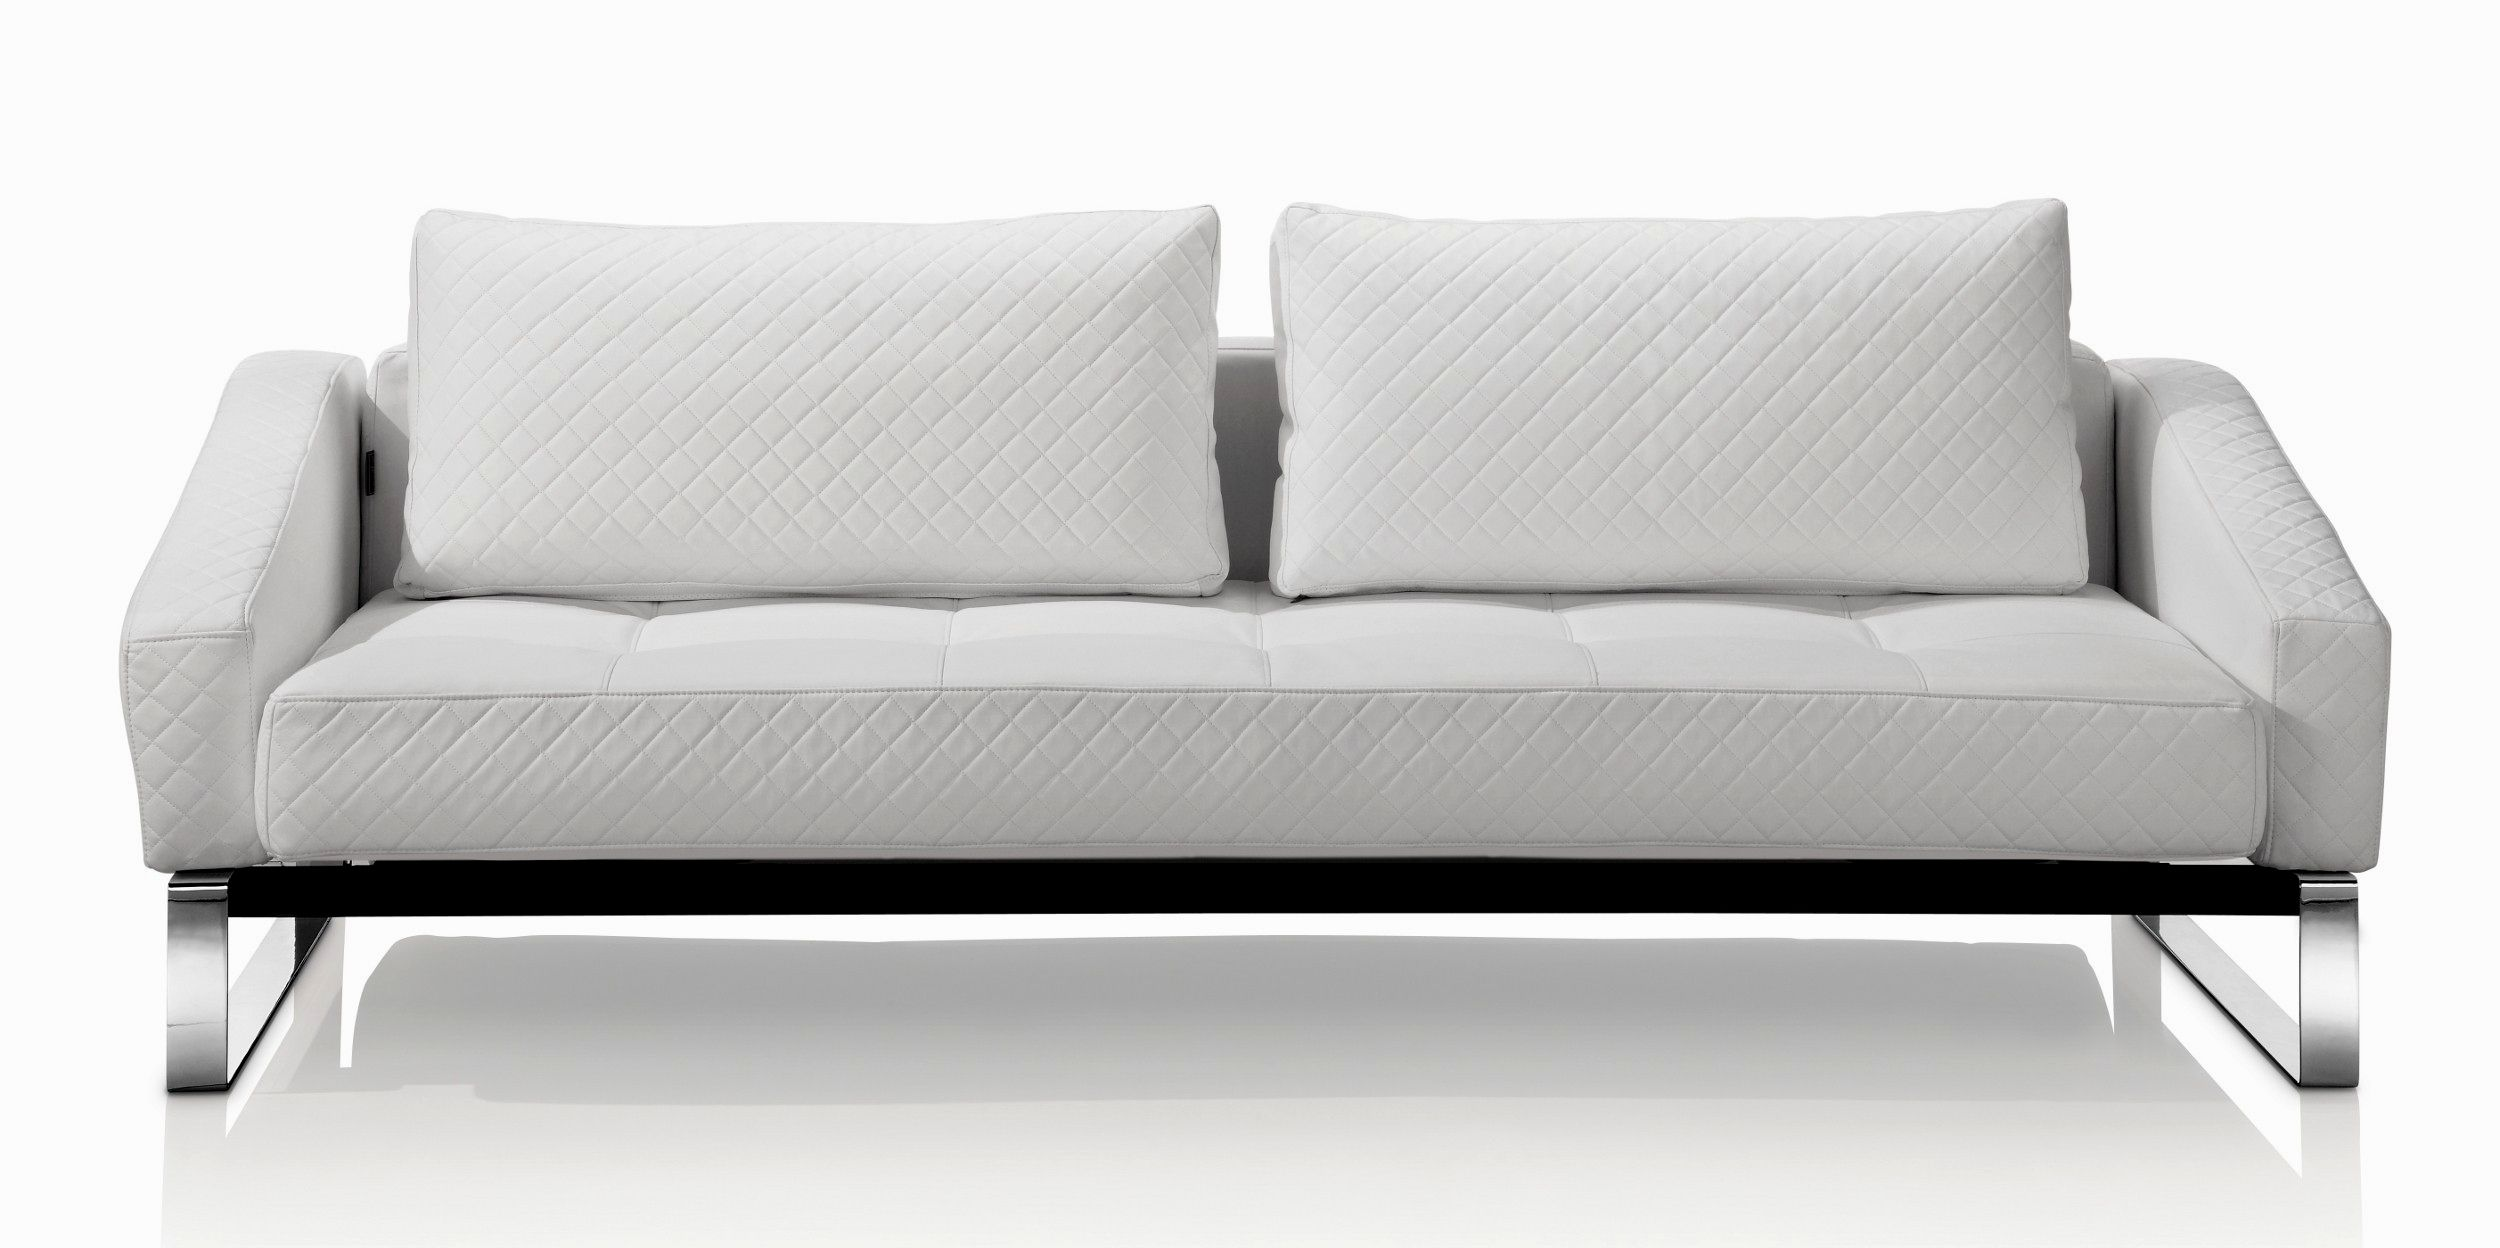 cool sofa and loveseat architecture-Fantastic sofa and Loveseat Ideas